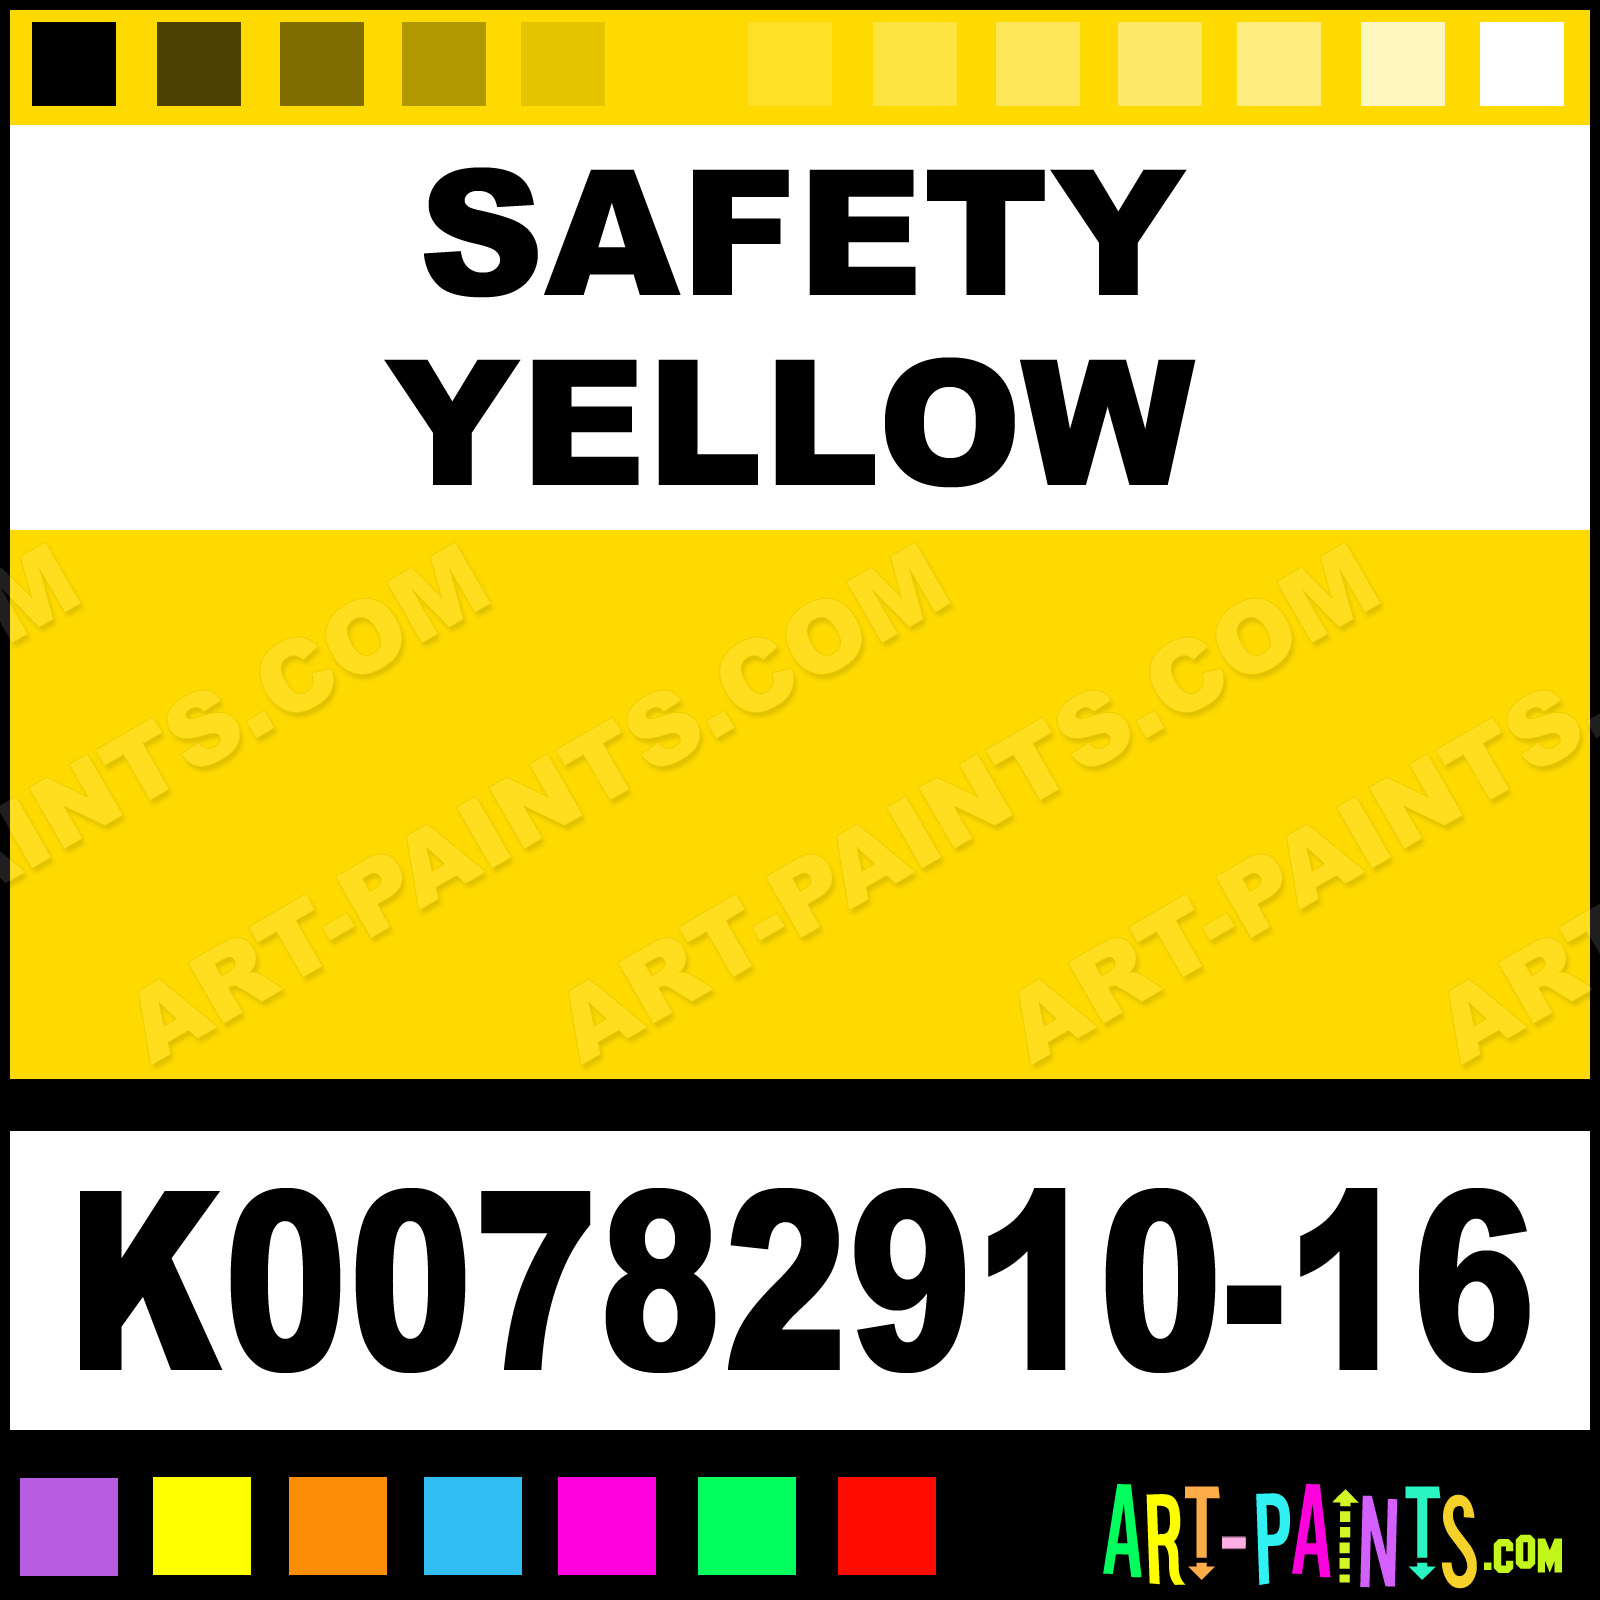 Safety Yellow Paint Safety Yellow